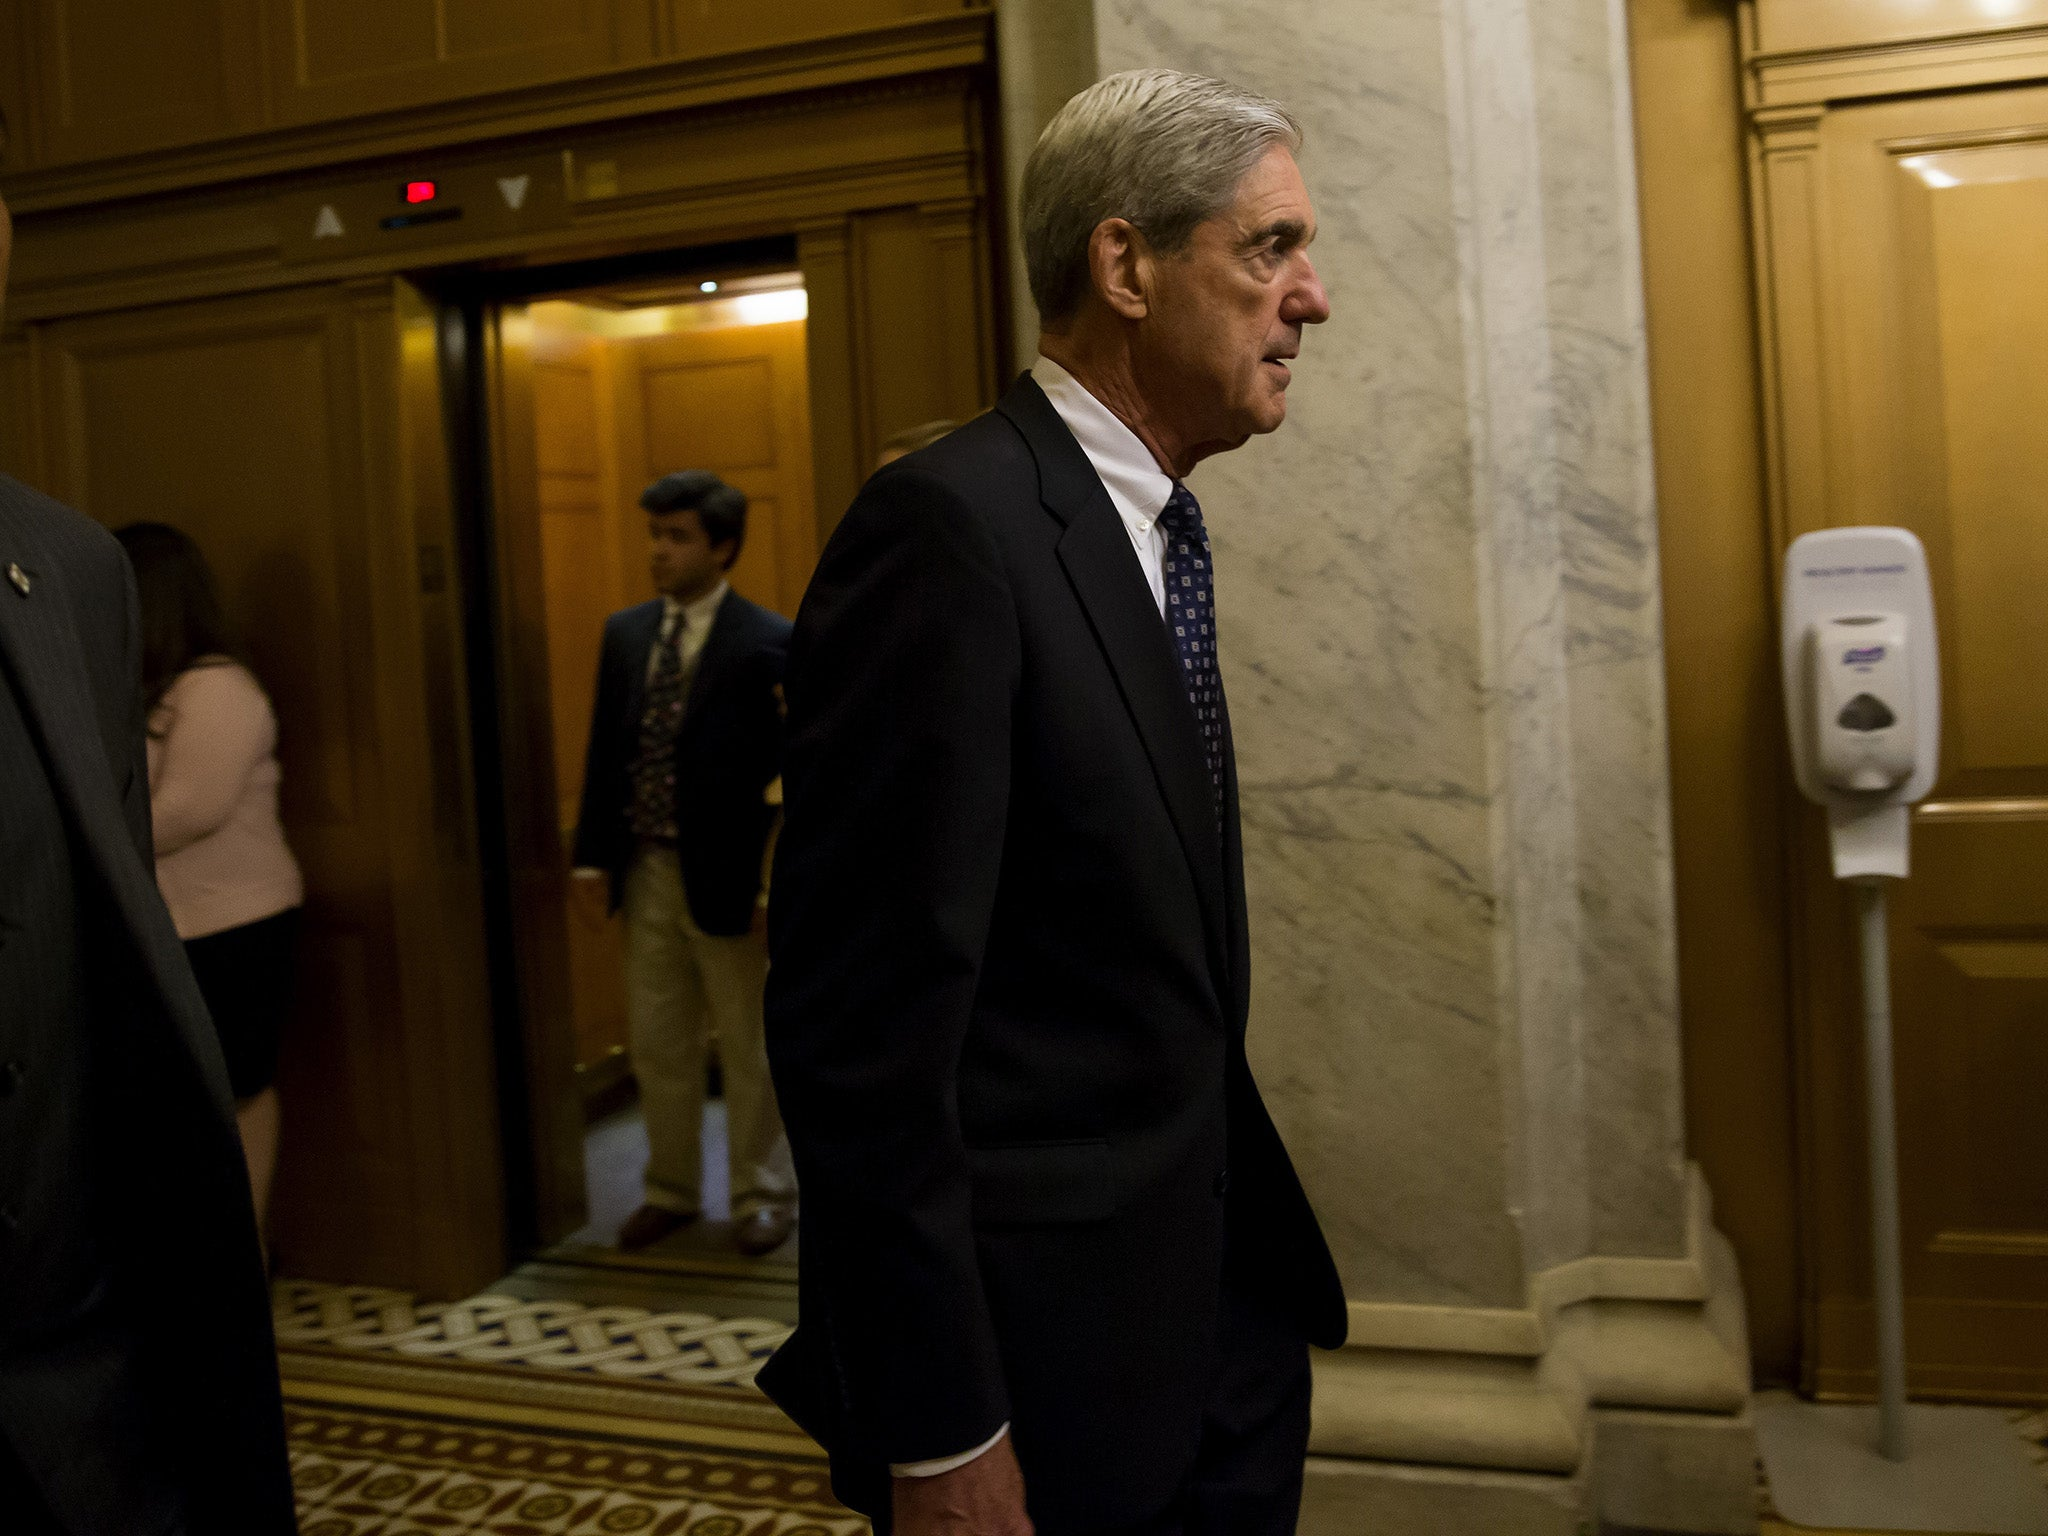 Robert Mueller: Previously sealed Watergate report released as guide for US special counsel